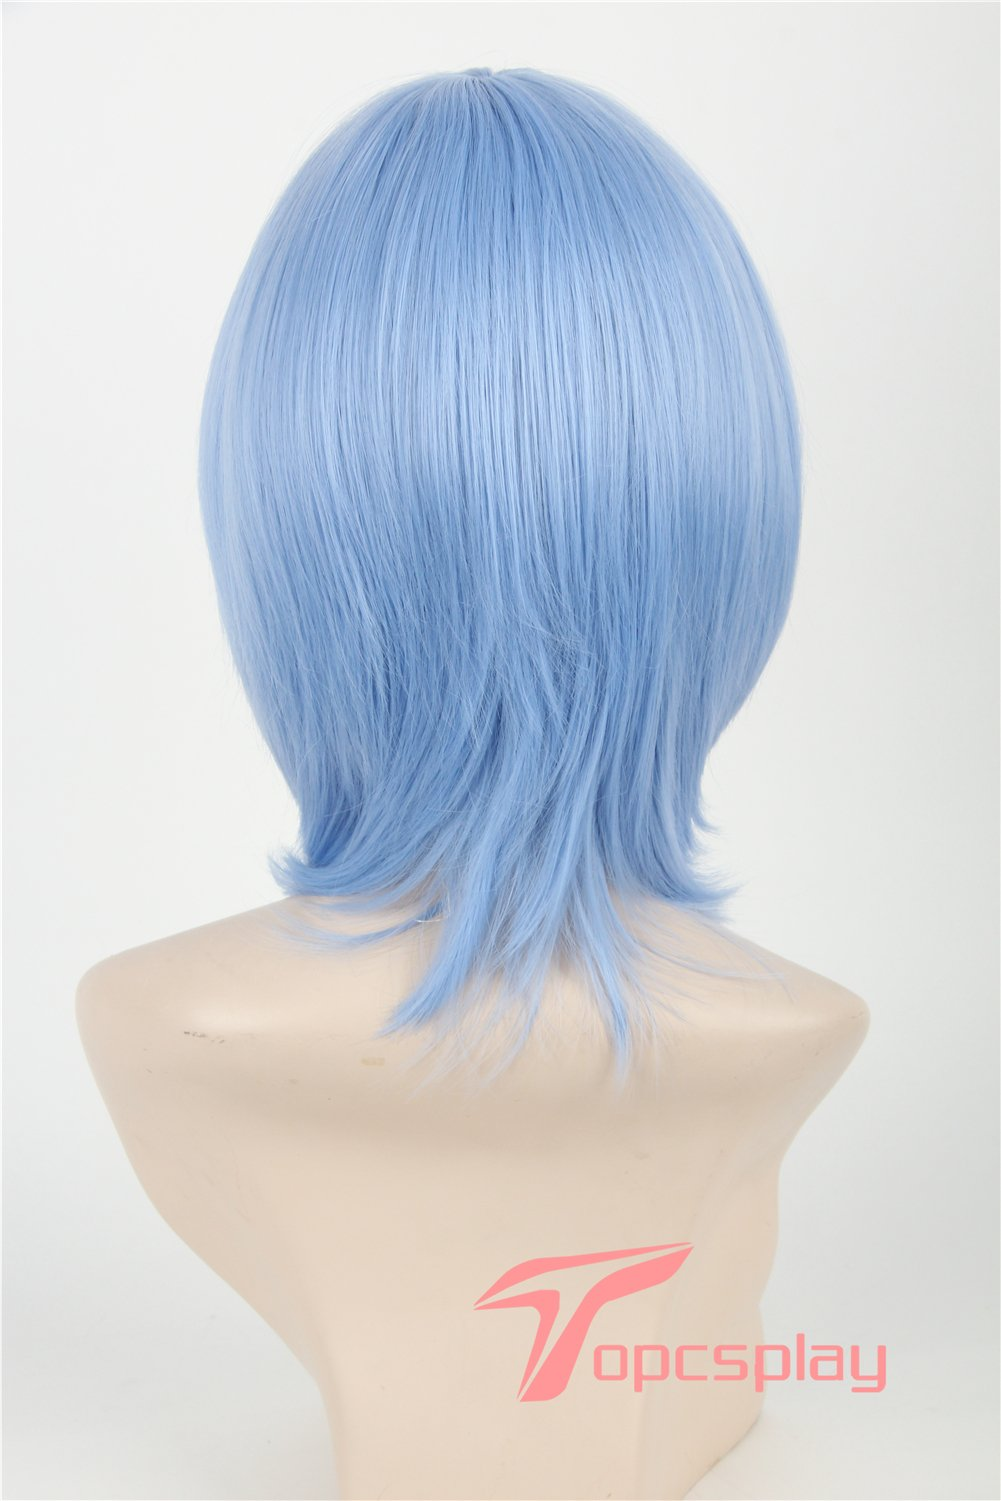 Topcosplay Short Straight Anime Cosplay Wigs Natural Halloween Costume Party Daily Hair Light Blue by Topcosplay (Image #4)